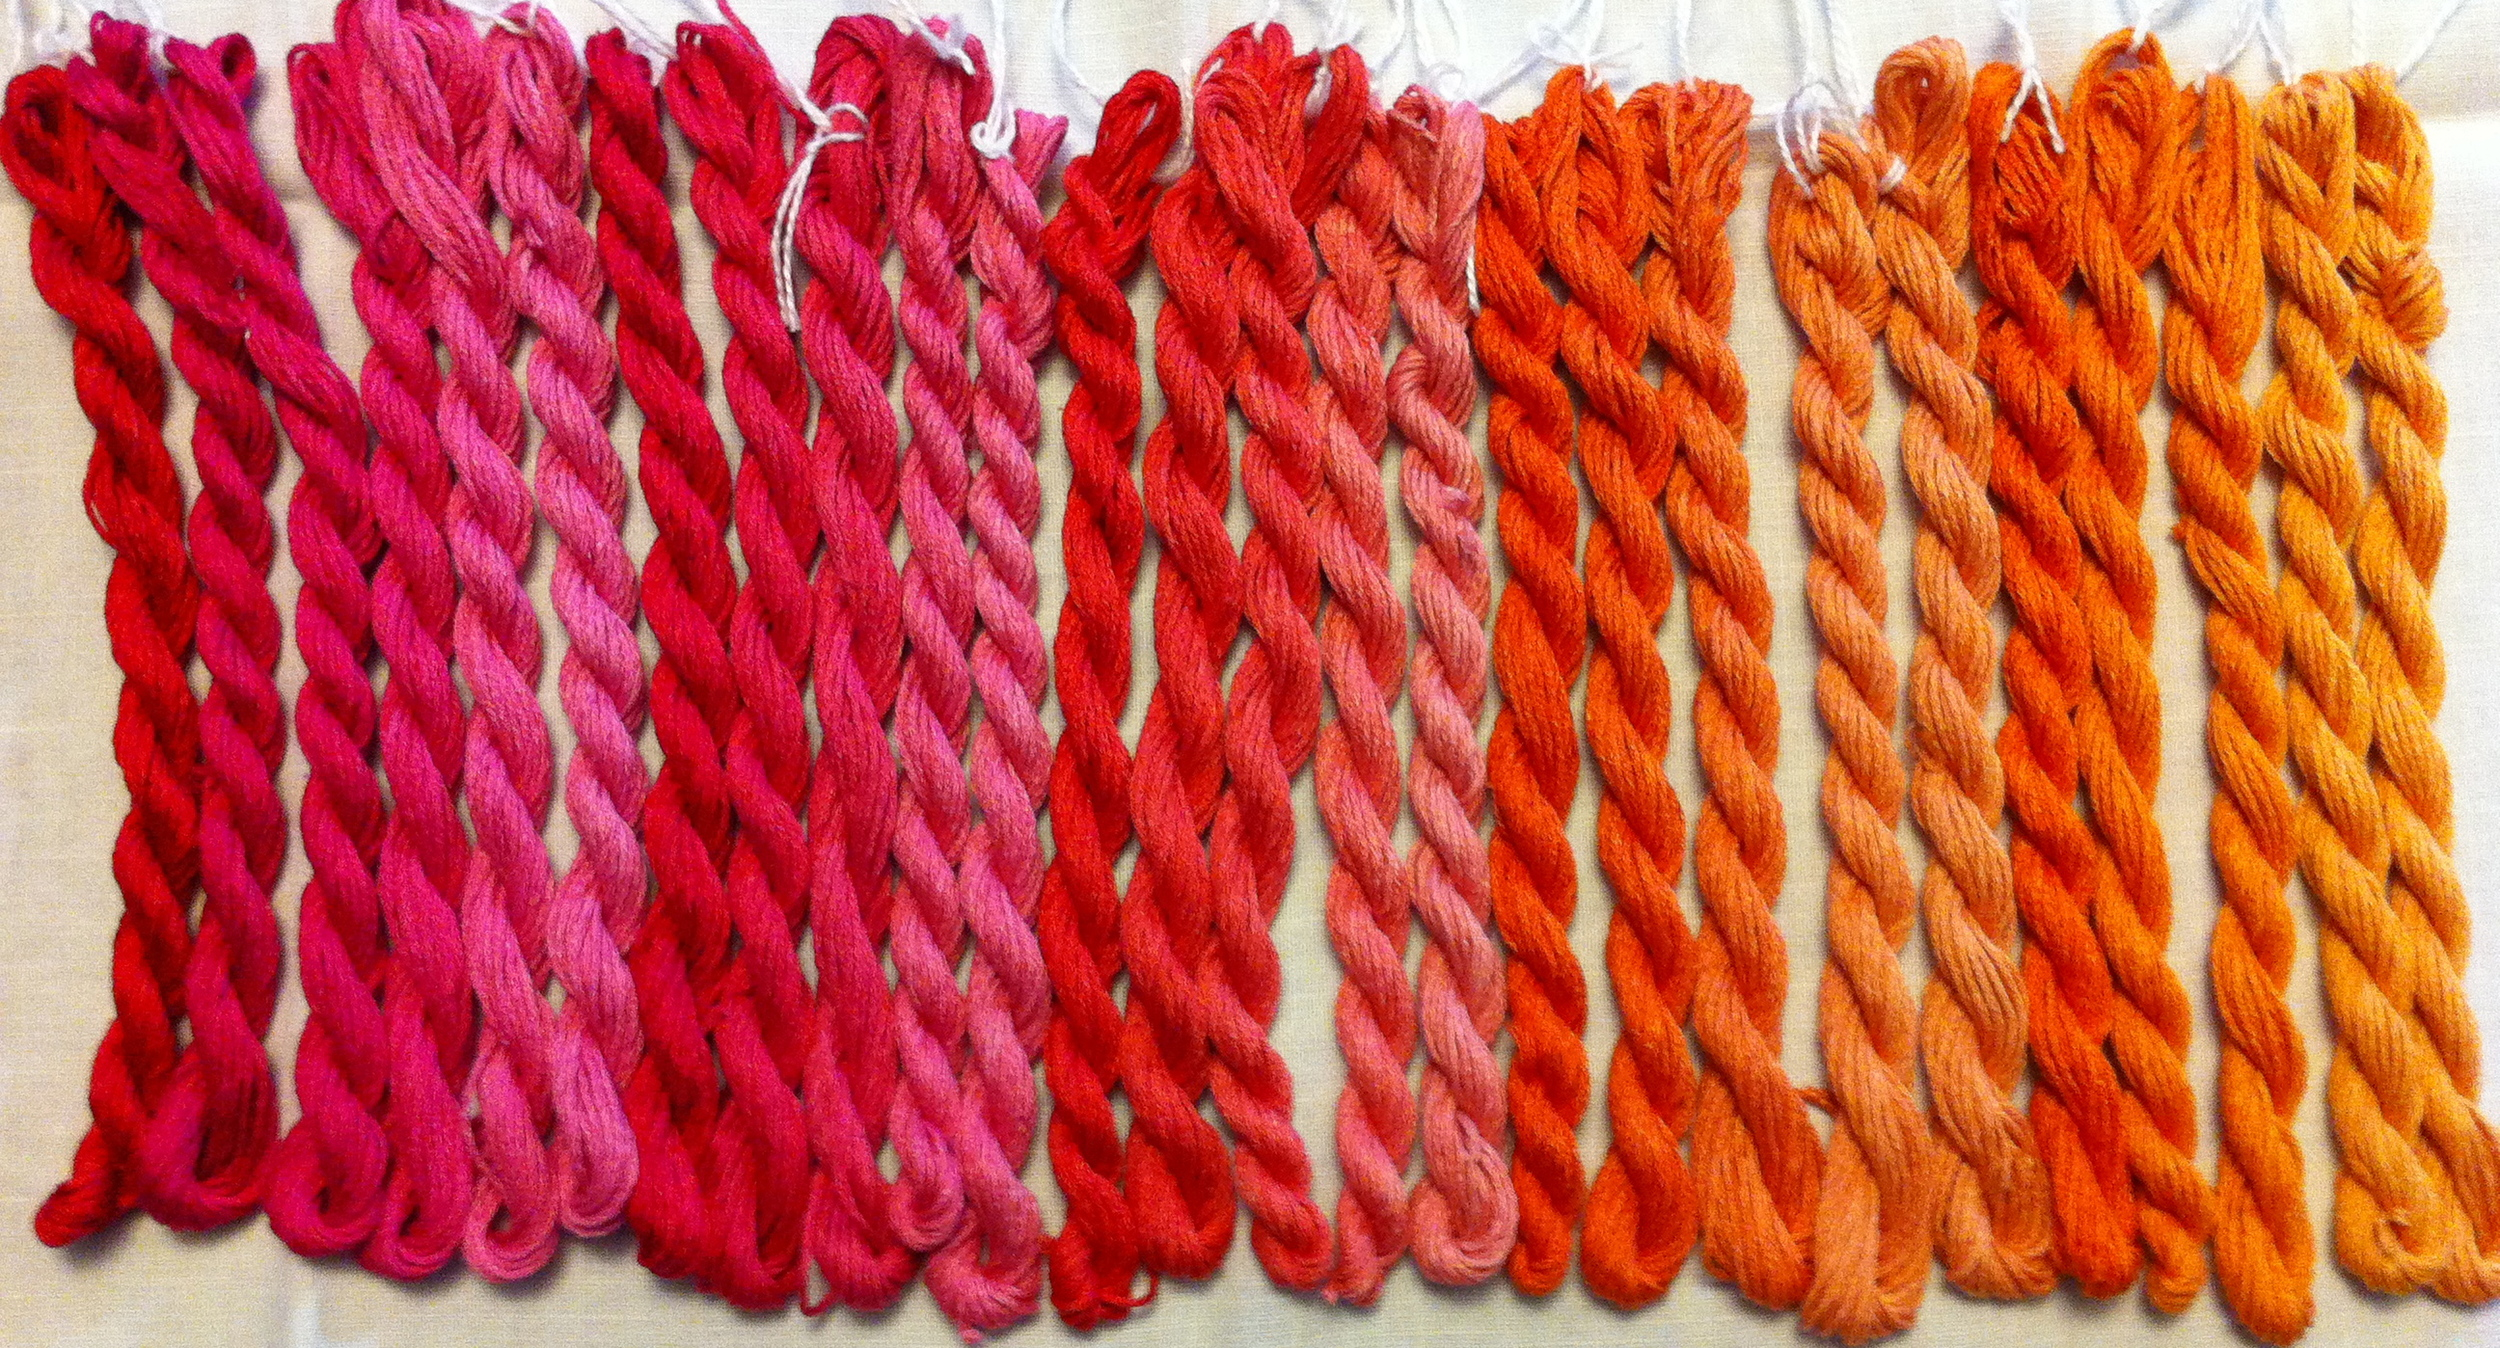 Pretty skeins all in a row.